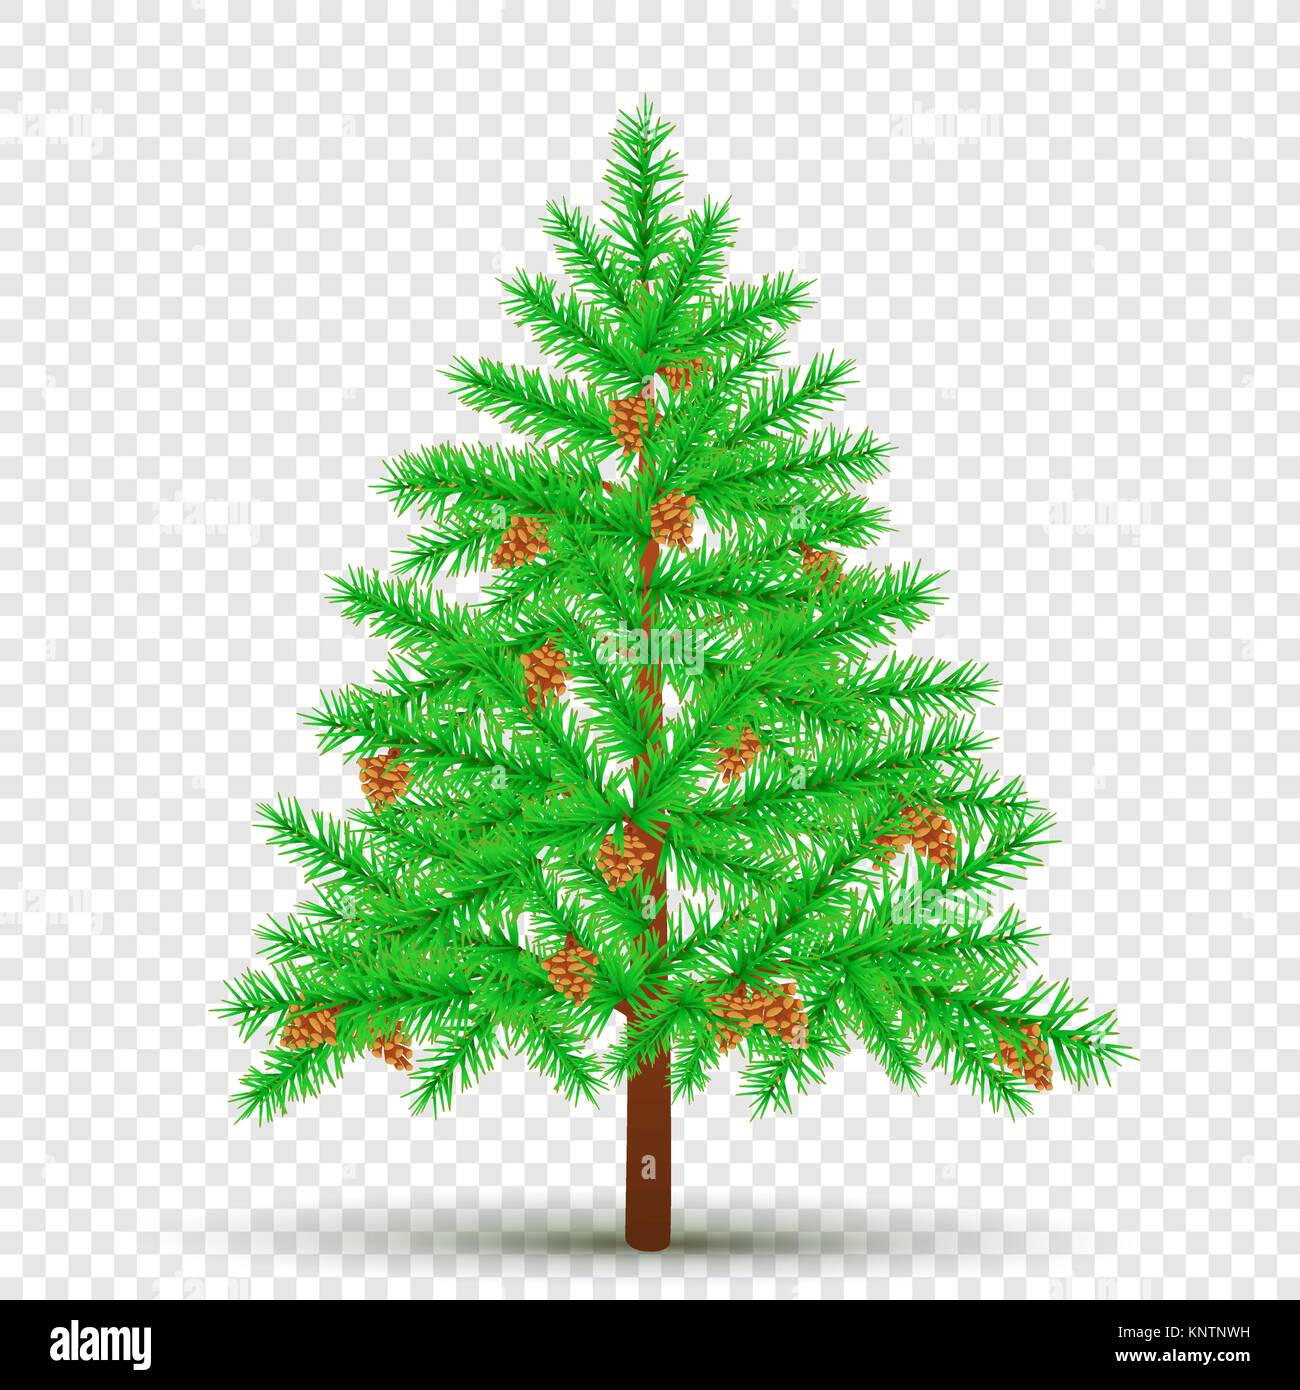 spruce with cones transparent background - Stock Vector